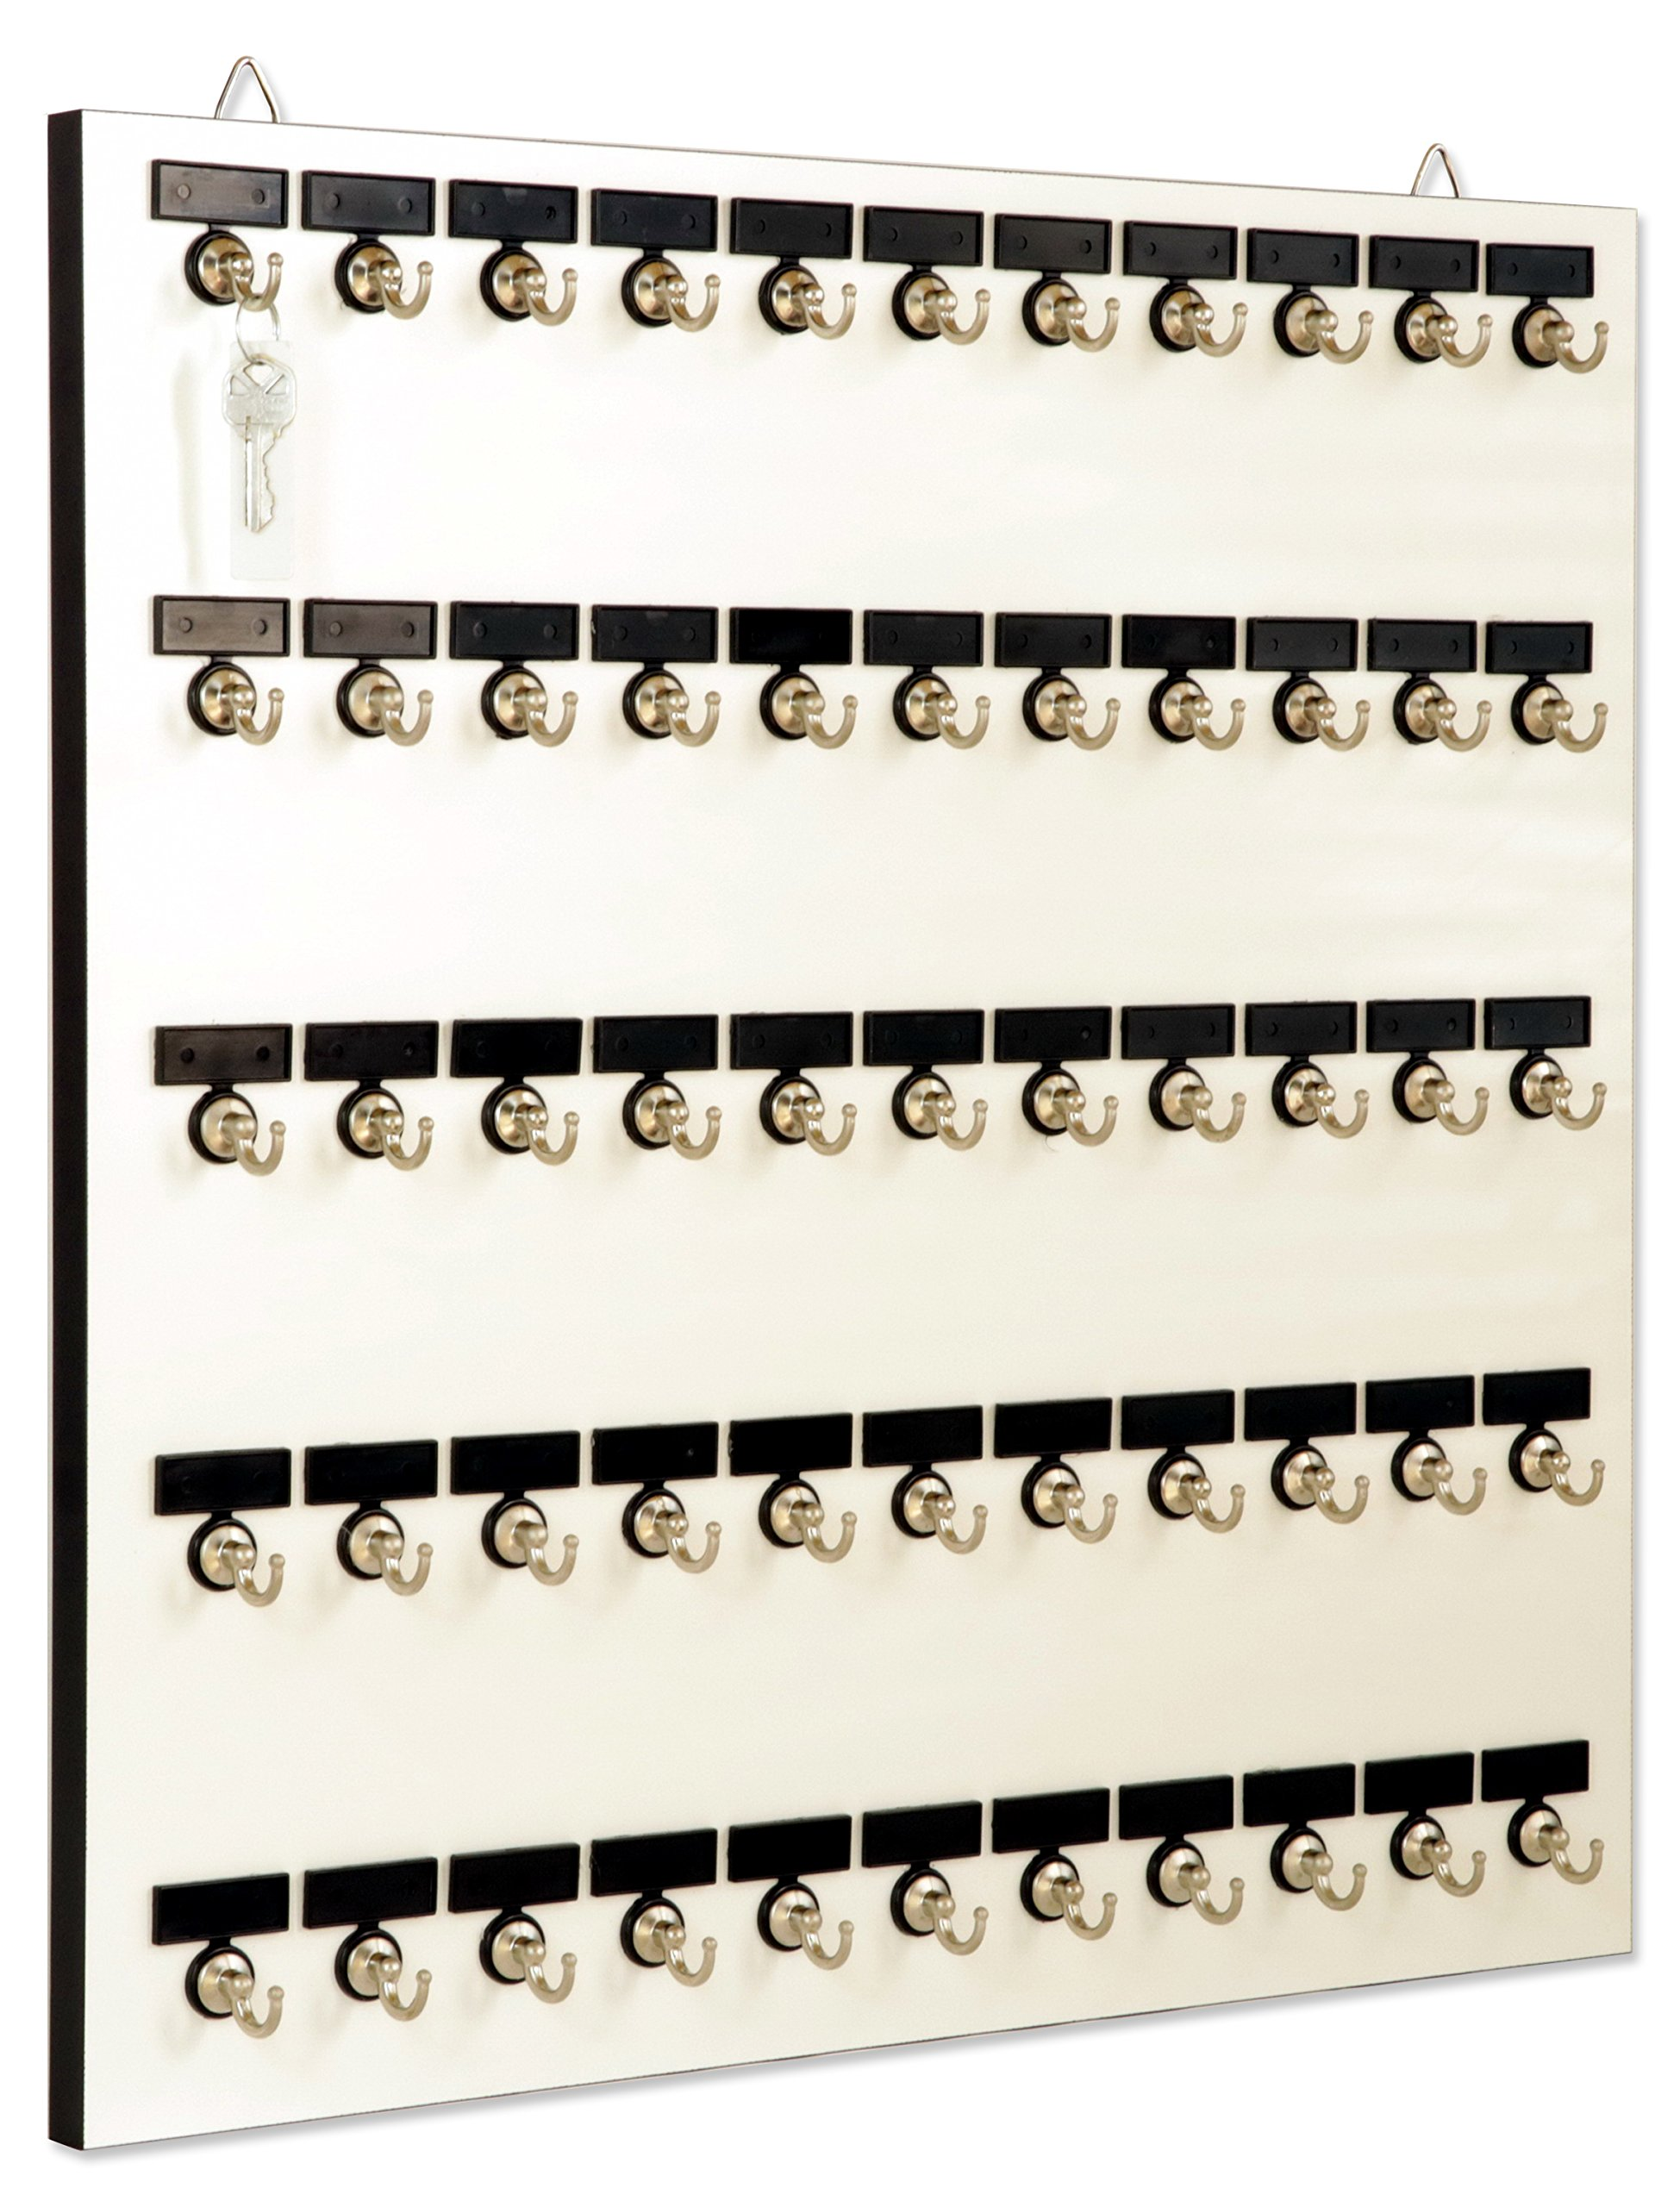 KEY STAND # 55MWN, 55 Bolted Metal Hooks with 'Customize Name Plates' and 1-55 Printed Numbers (55 sets of Tag & Ring Included)